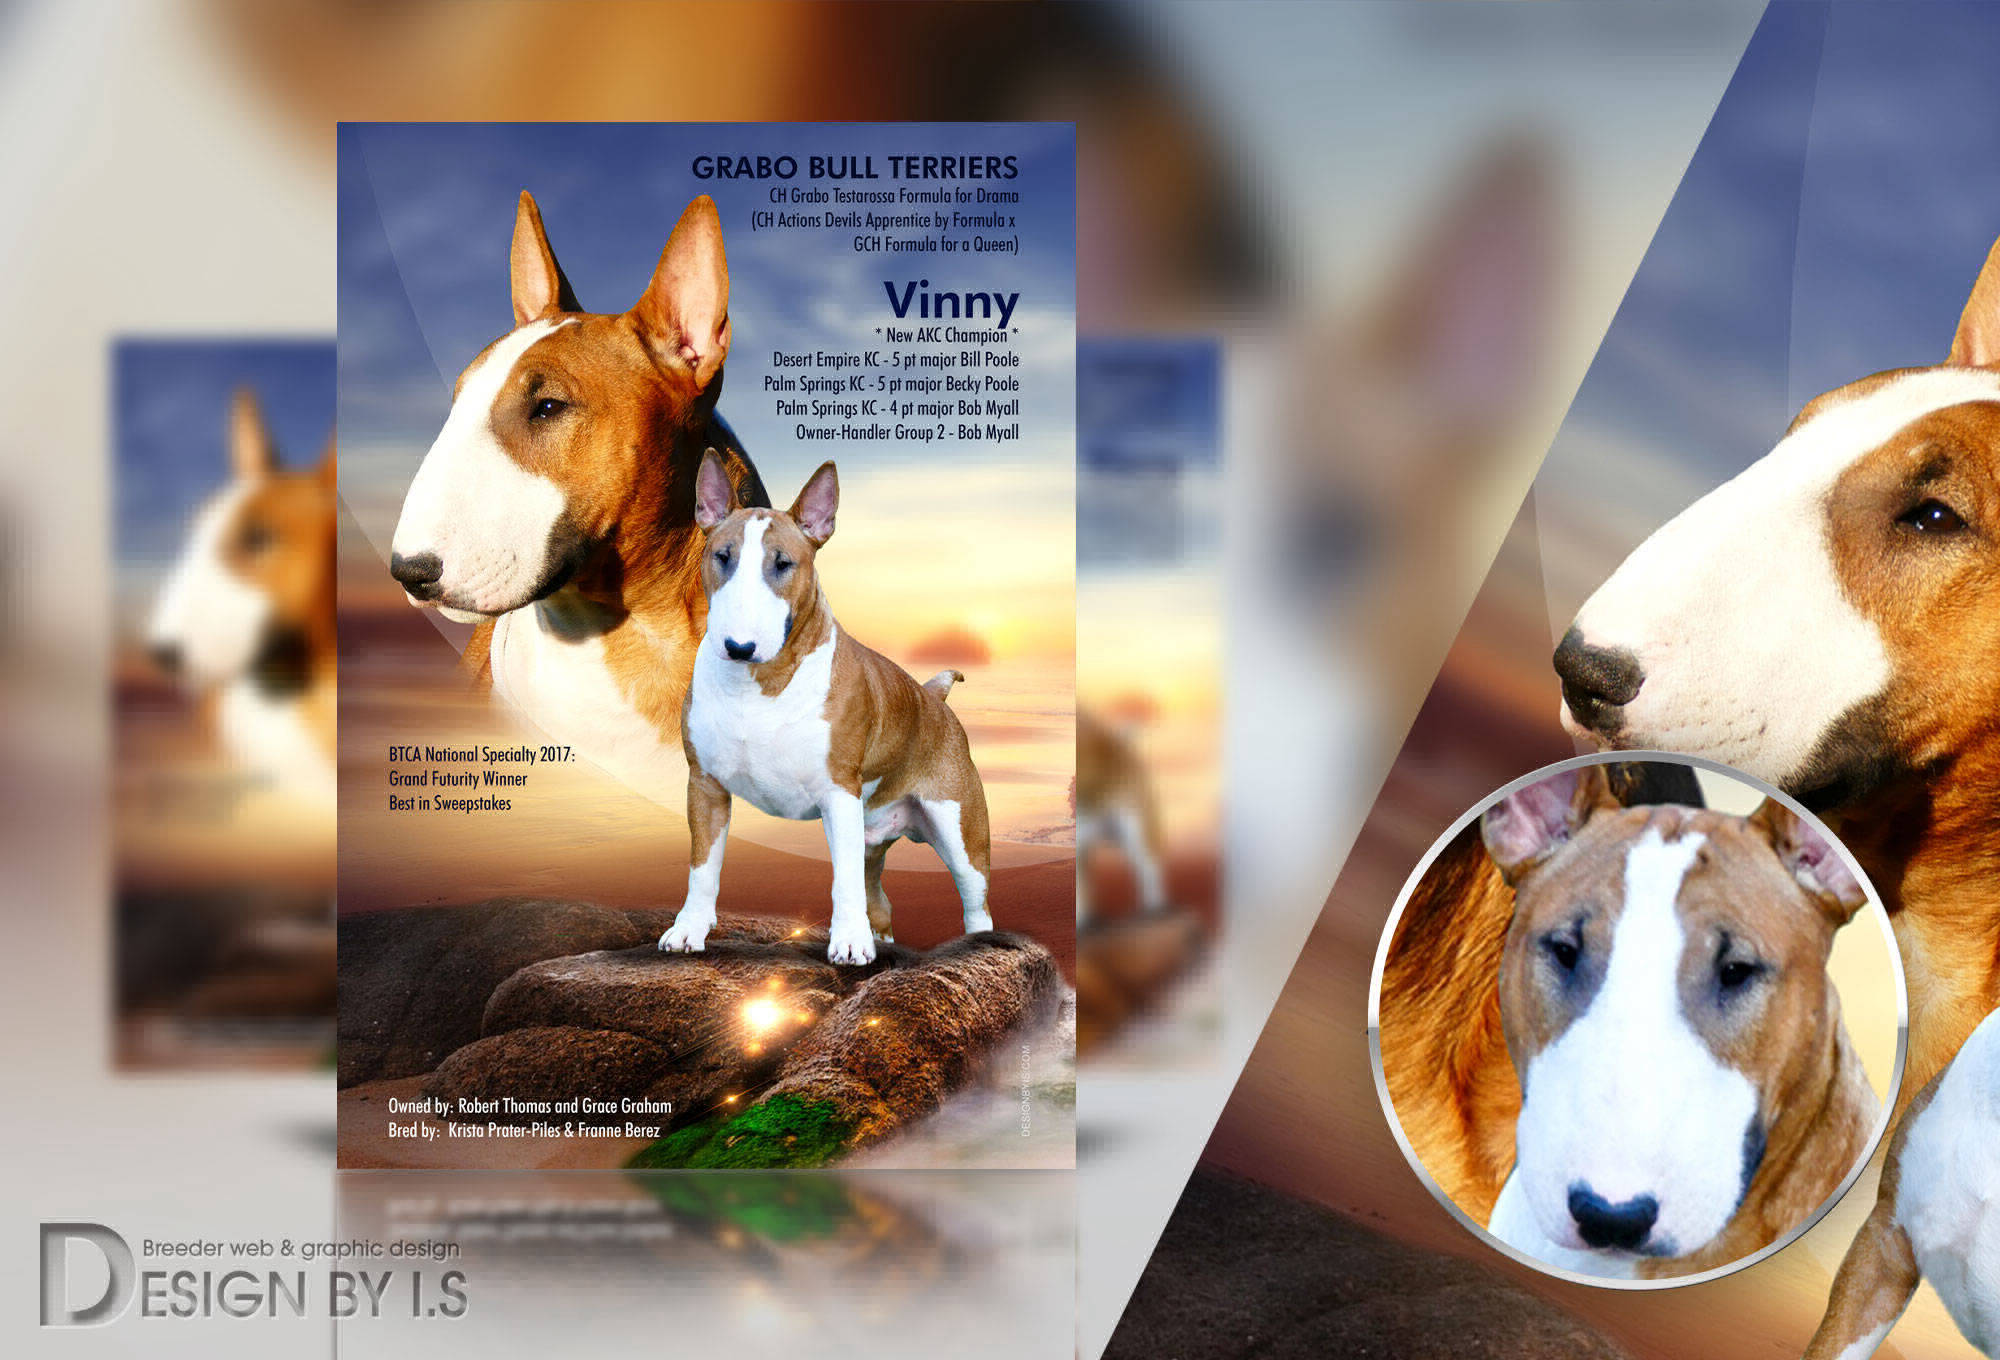 Bull terrier advert. Designbyis